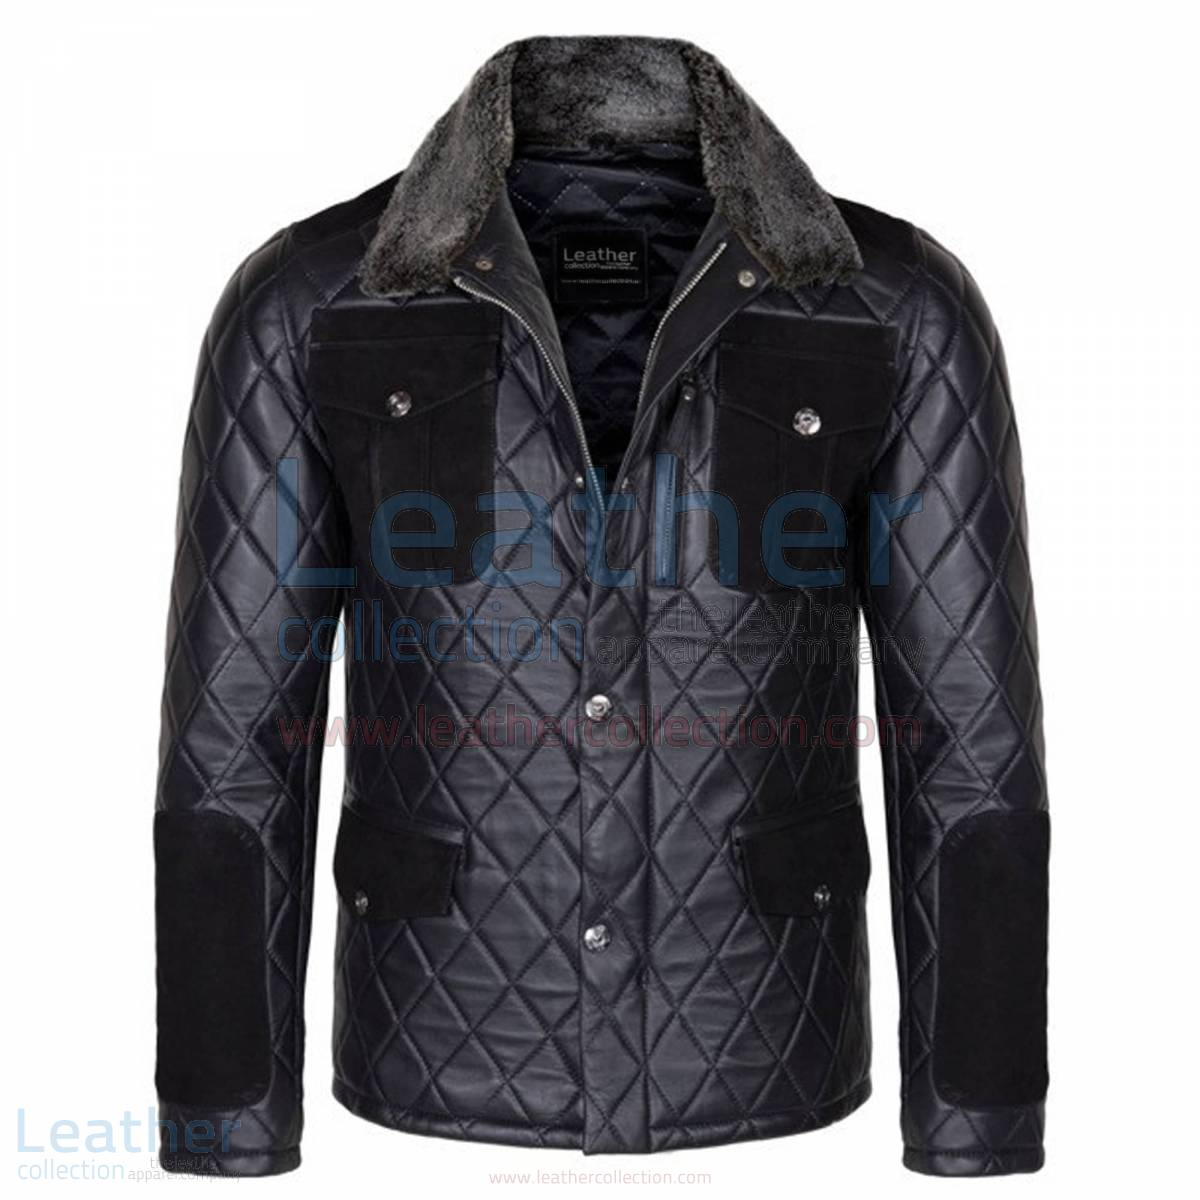 Diamond Leather Jacket with Fur Collar & Flapped Pockets –  Jacket